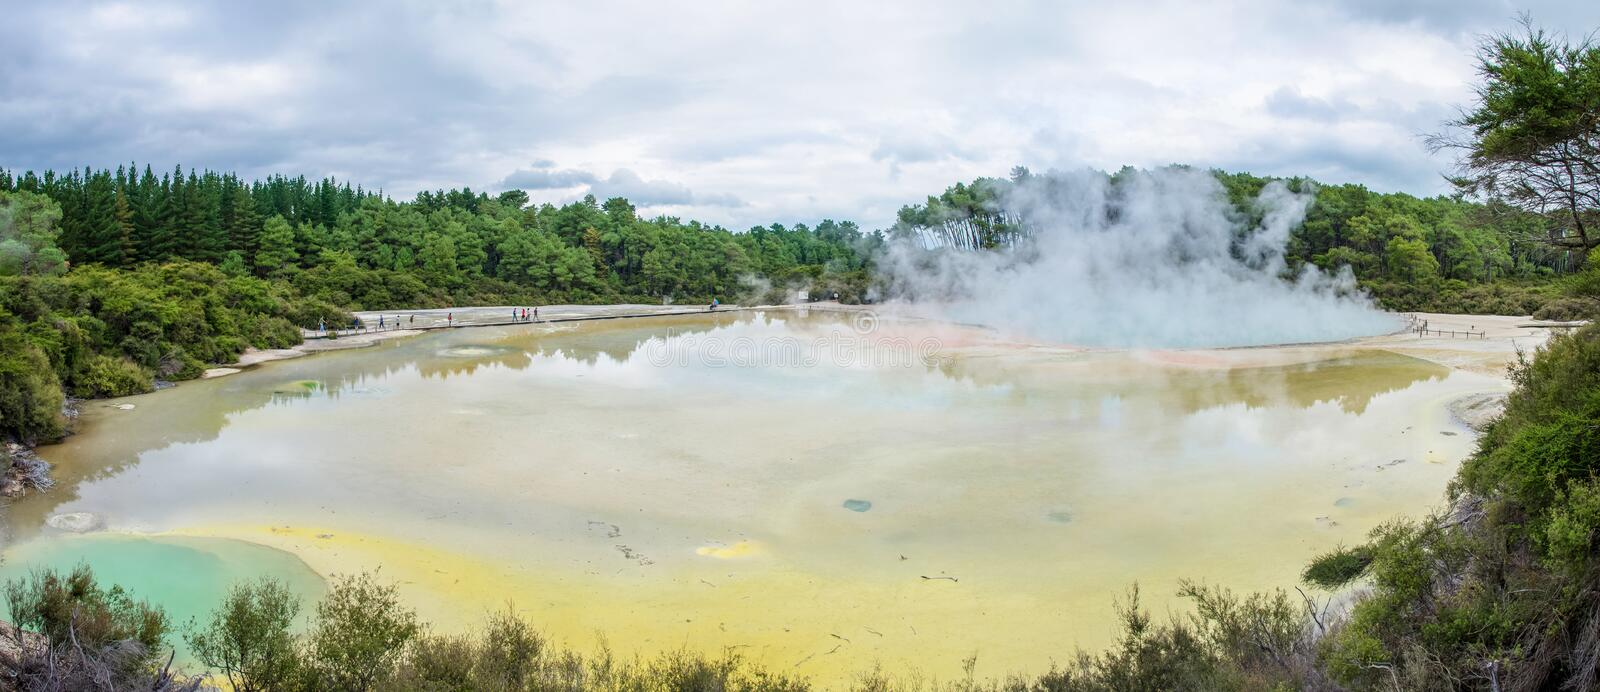 Wai-O-Tapu Thermal Wonderland which is located in Rotorua, New Zealand. royalty free stock photos